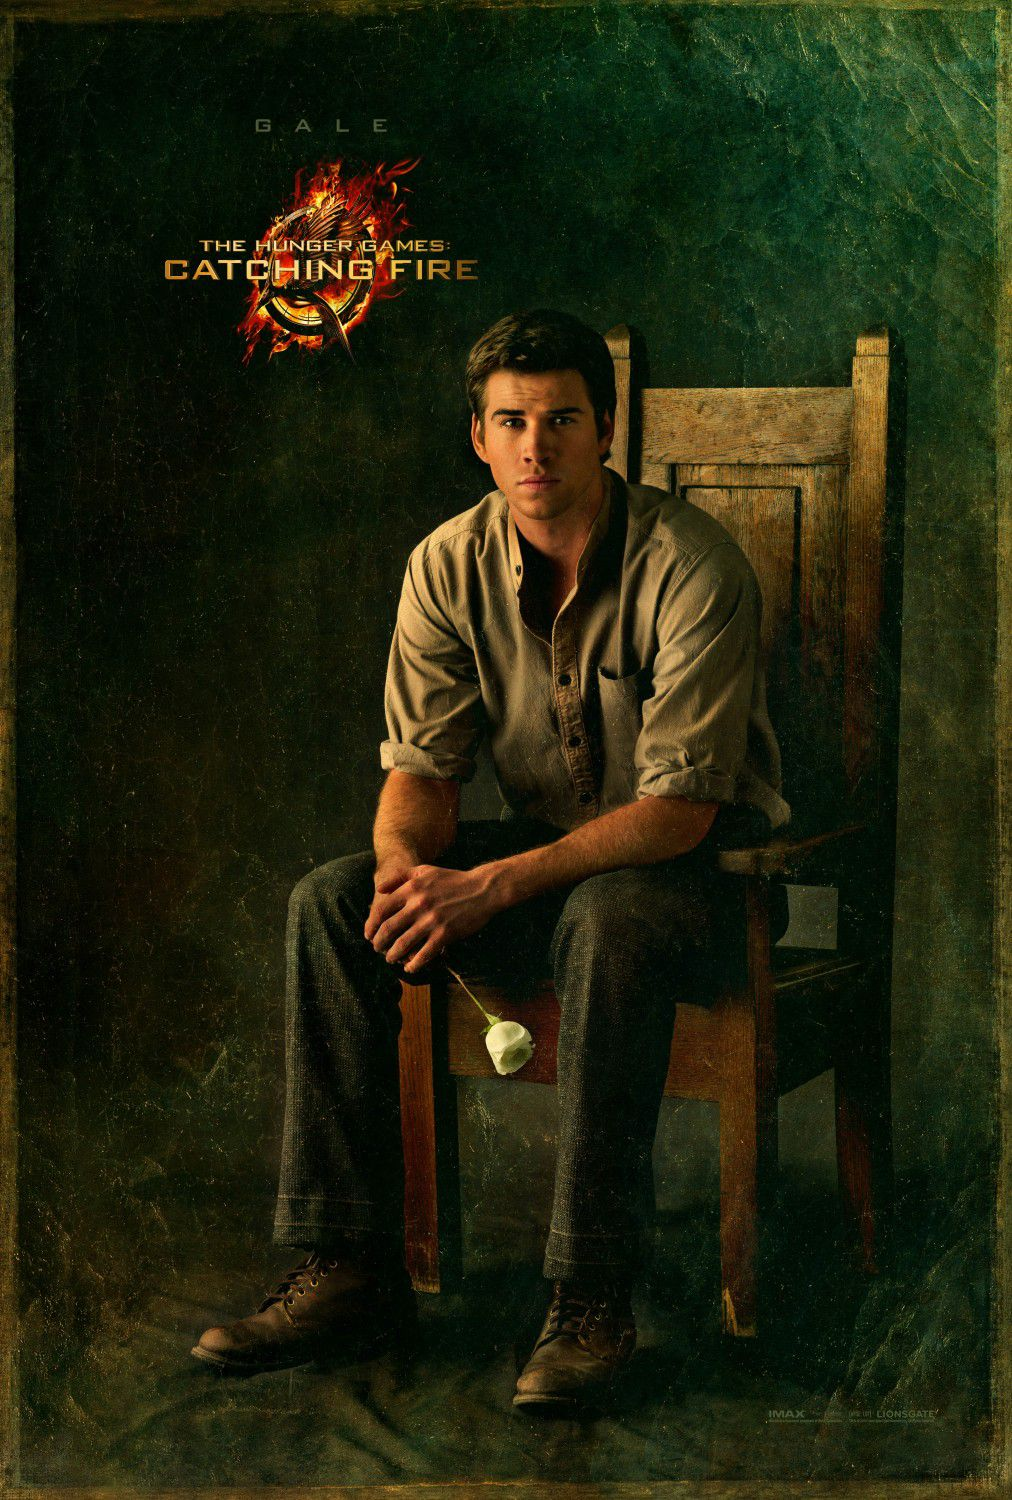 Liam Hemsworth is Gale Hawthorne